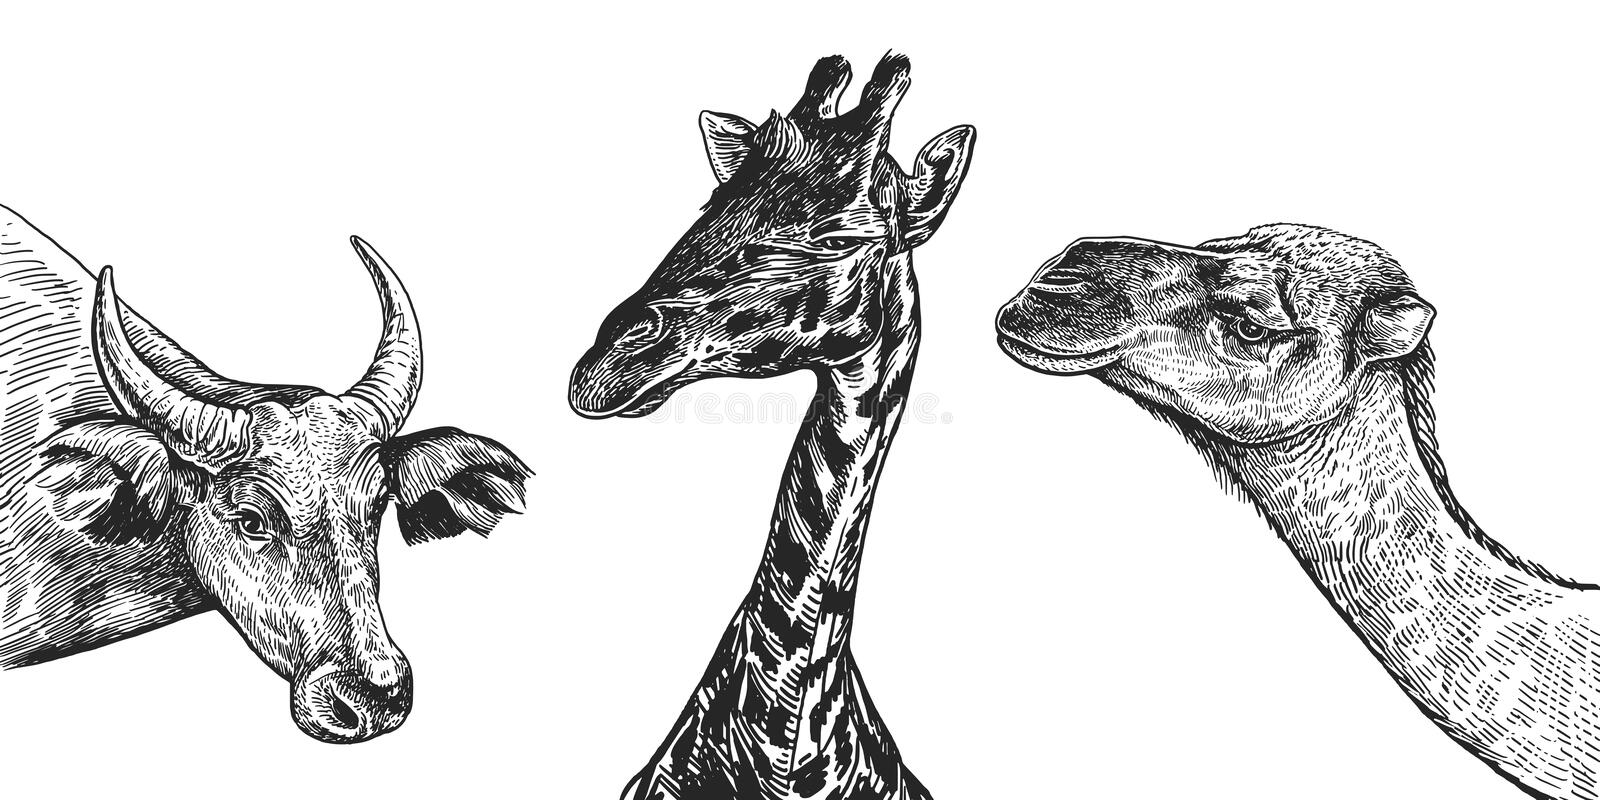 Realistic portrait of African animals camel, cow, giraffe. Vintage engraving. Black and white hand drawing. Vector stock illustration